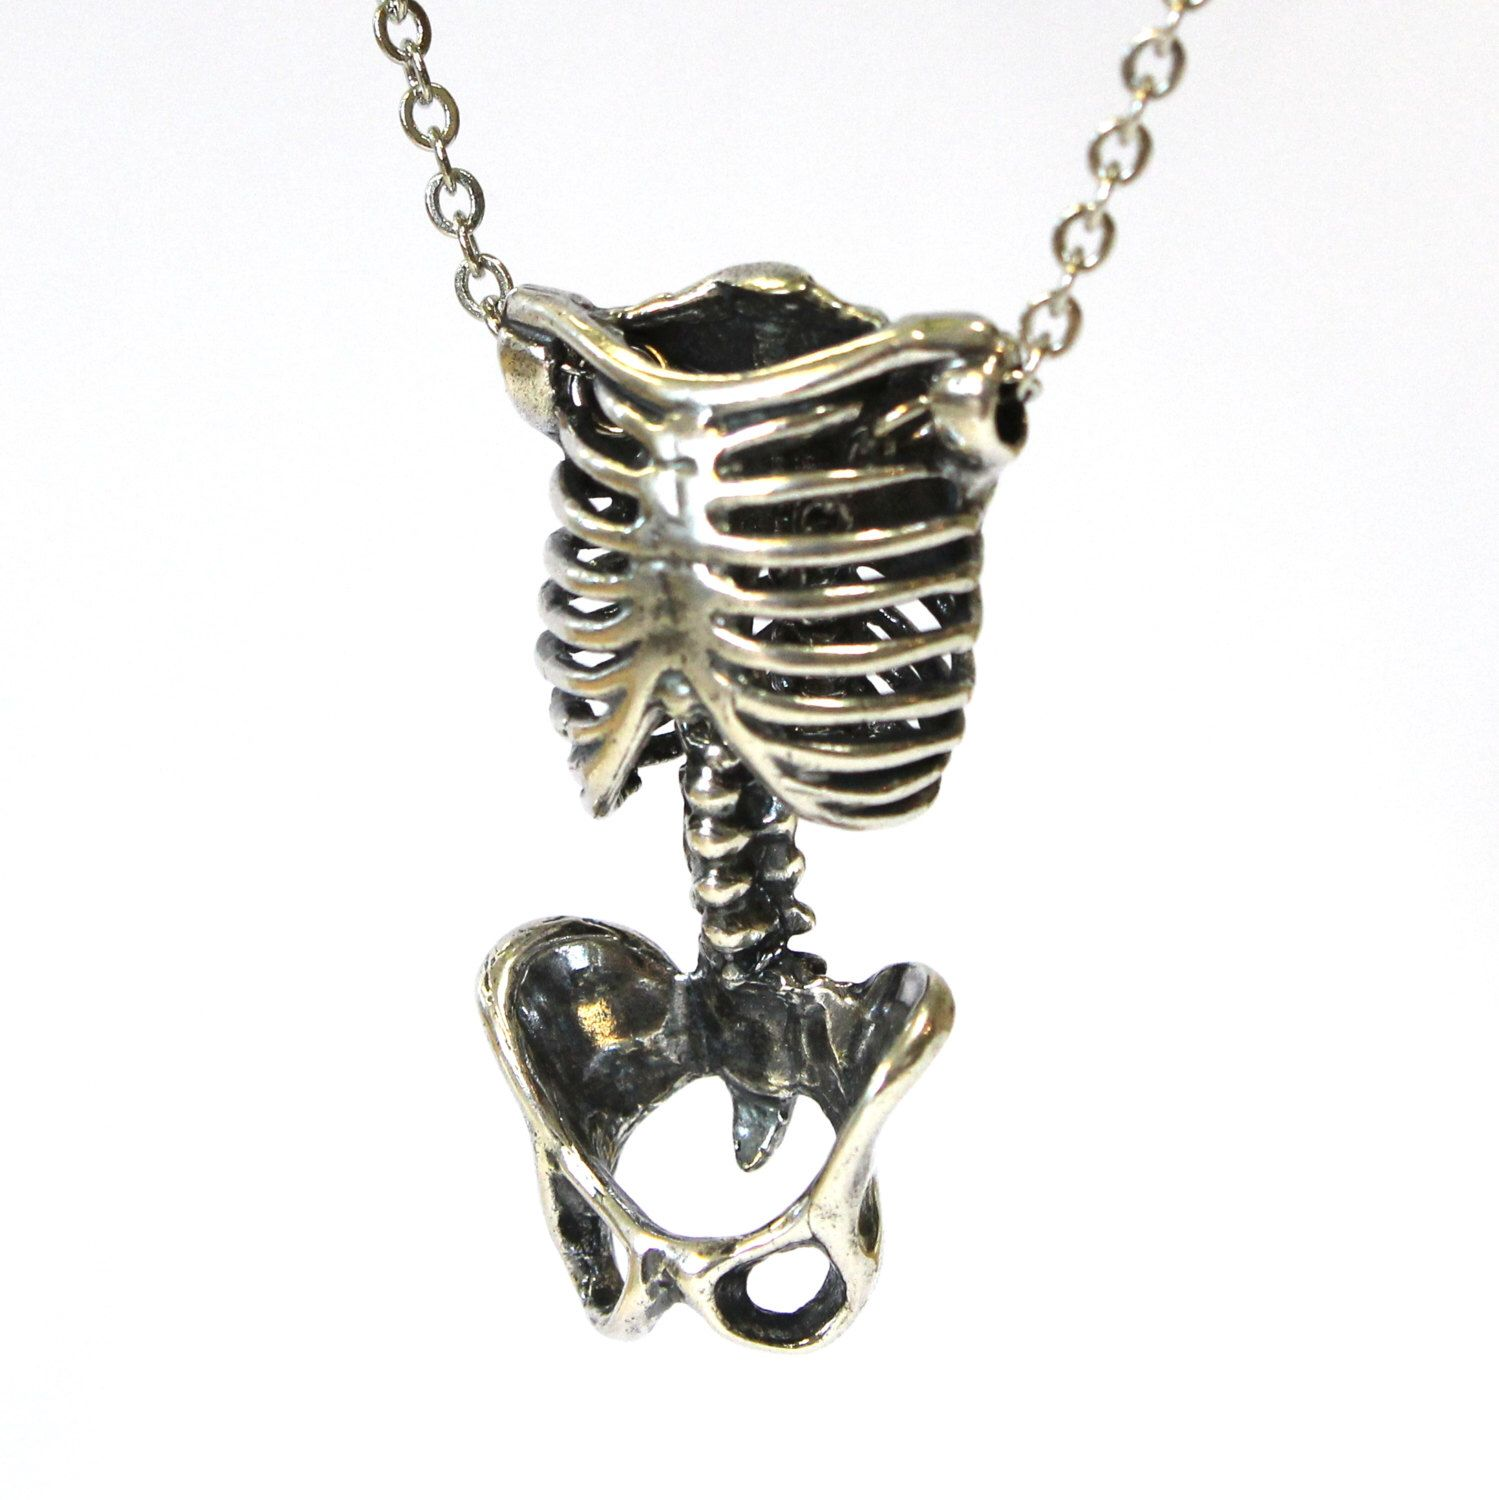 Skeleton torso necklace silver anatomical human skeleton pendant skeleton torso necklace silver anatomical human skeleton pendant necklace pelvis rib cage 083 037 by mrd74 on etsy aloadofball Gallery